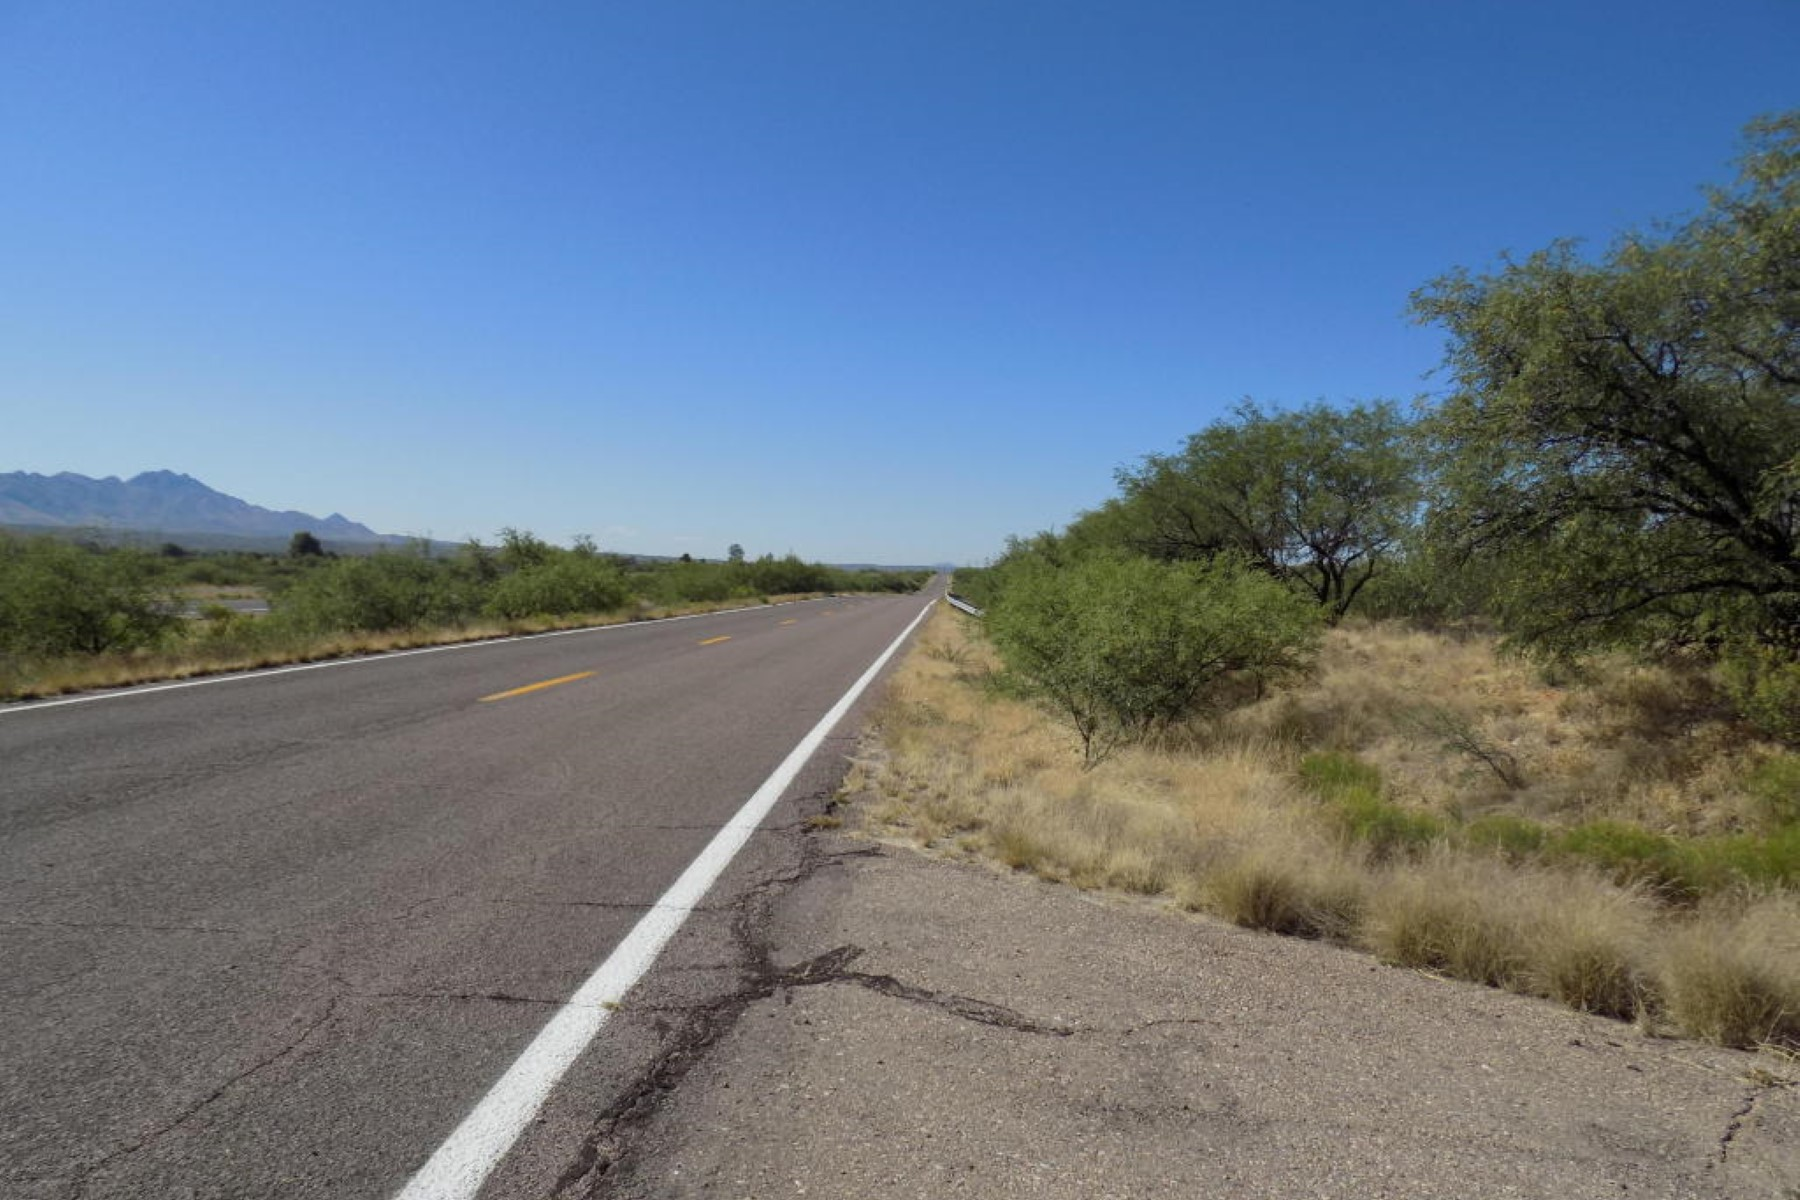 Terreno per Vendita alle ore Fully platted and county approved subdivision ready to go TBD W FRONTAGE Road 1-80 Tubac, Arizona, 85646 Stati Uniti